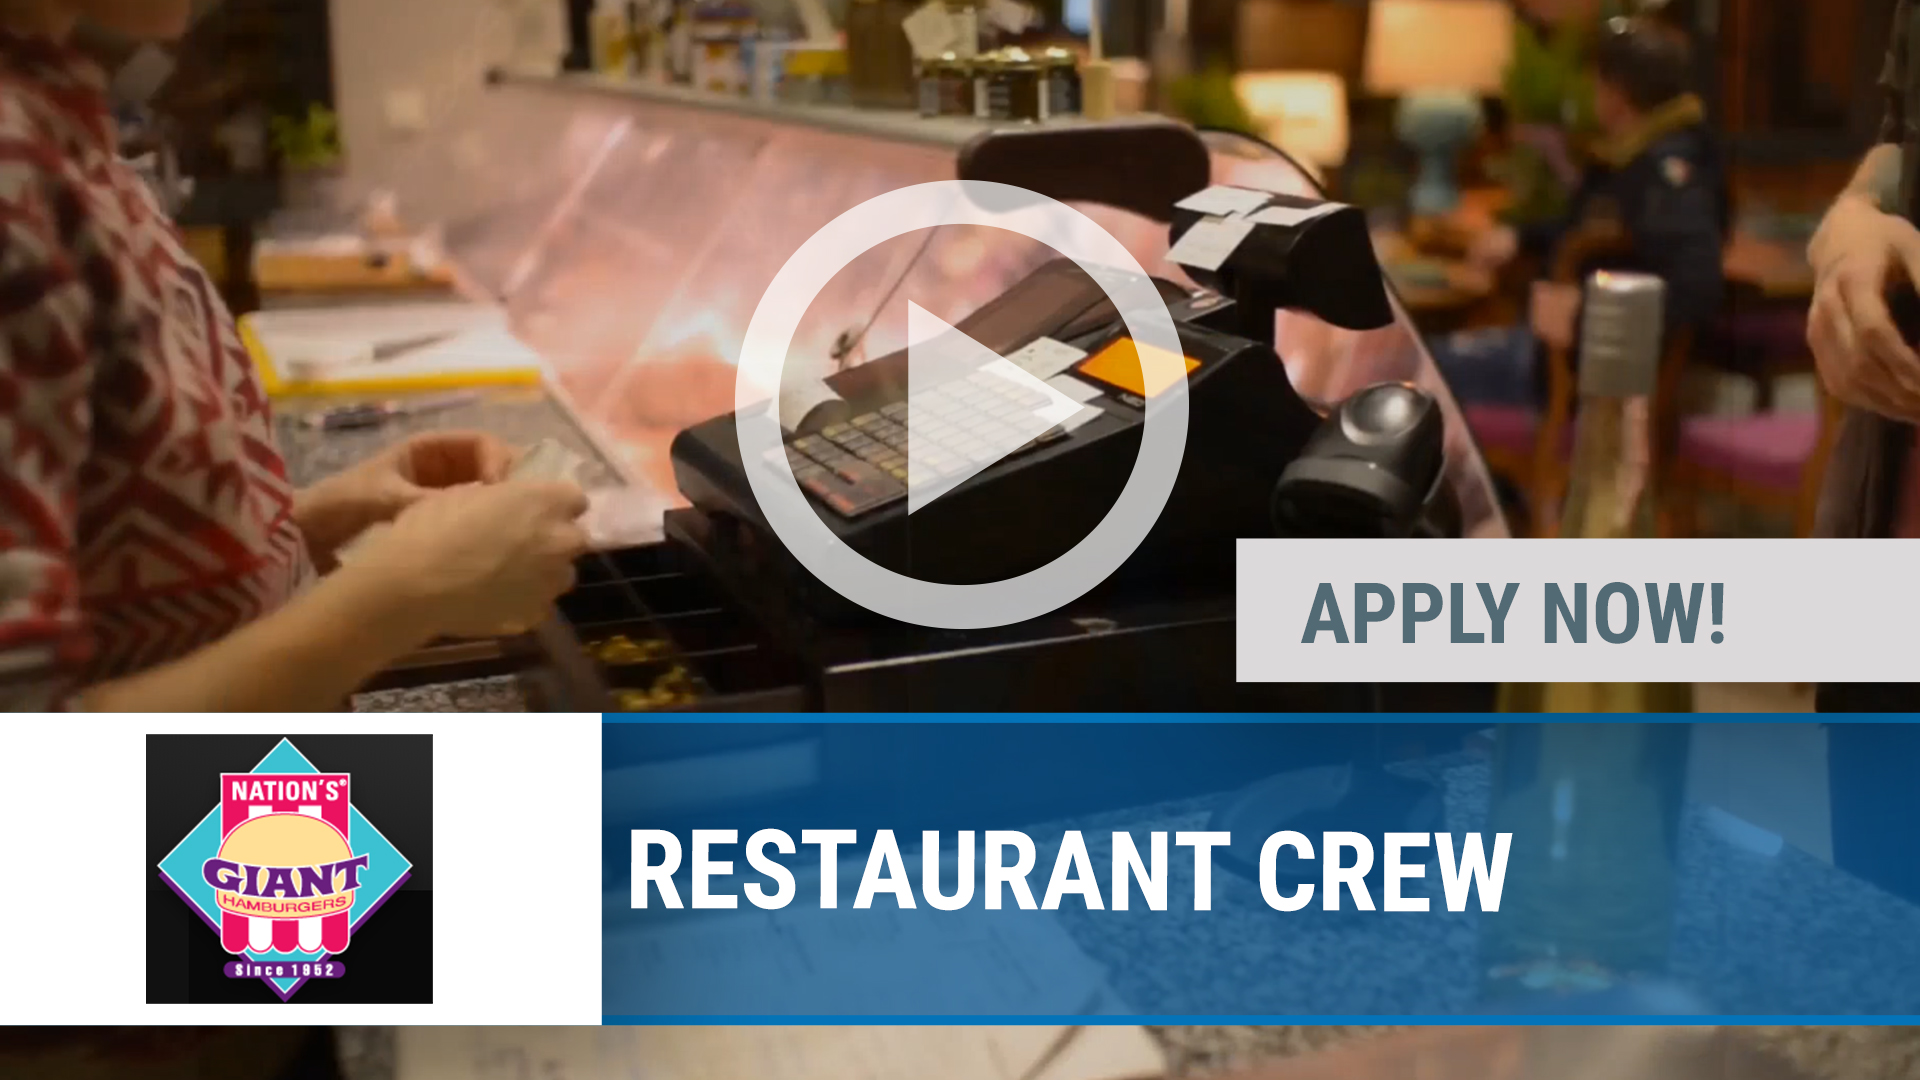 Watch our careers video for available job opening OPEN INTERVIEWS 1_24 & 1_25 RESTAURANT CREW in CITRUS HEIGHTS, CA